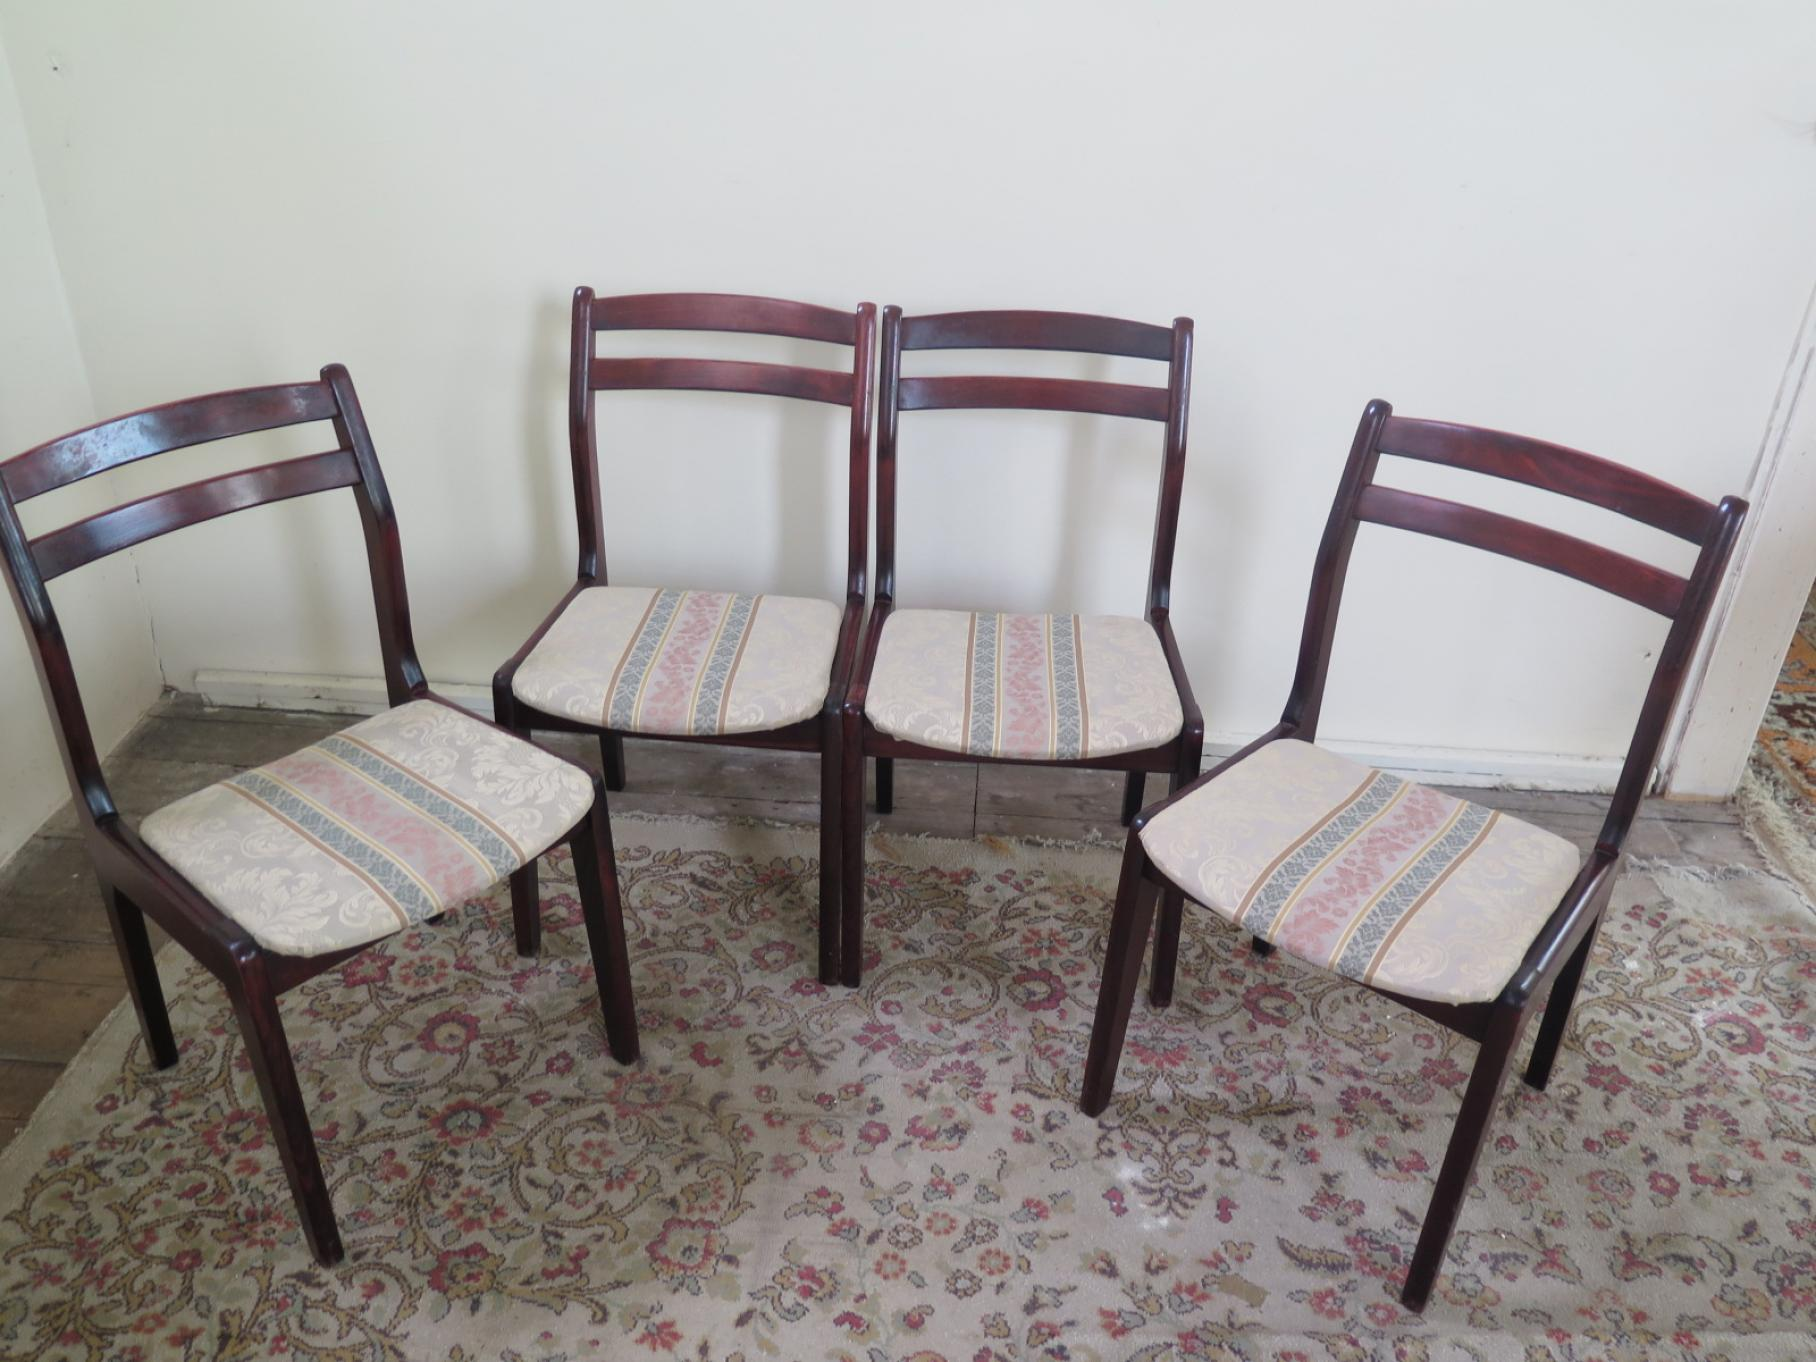 Nathan Dining Room Chairs My Blog : a set of four quality retro nathan dining room chairs68 843 2 from nuovavdeinternational.com size 1816 x 1362 jpeg 226kB